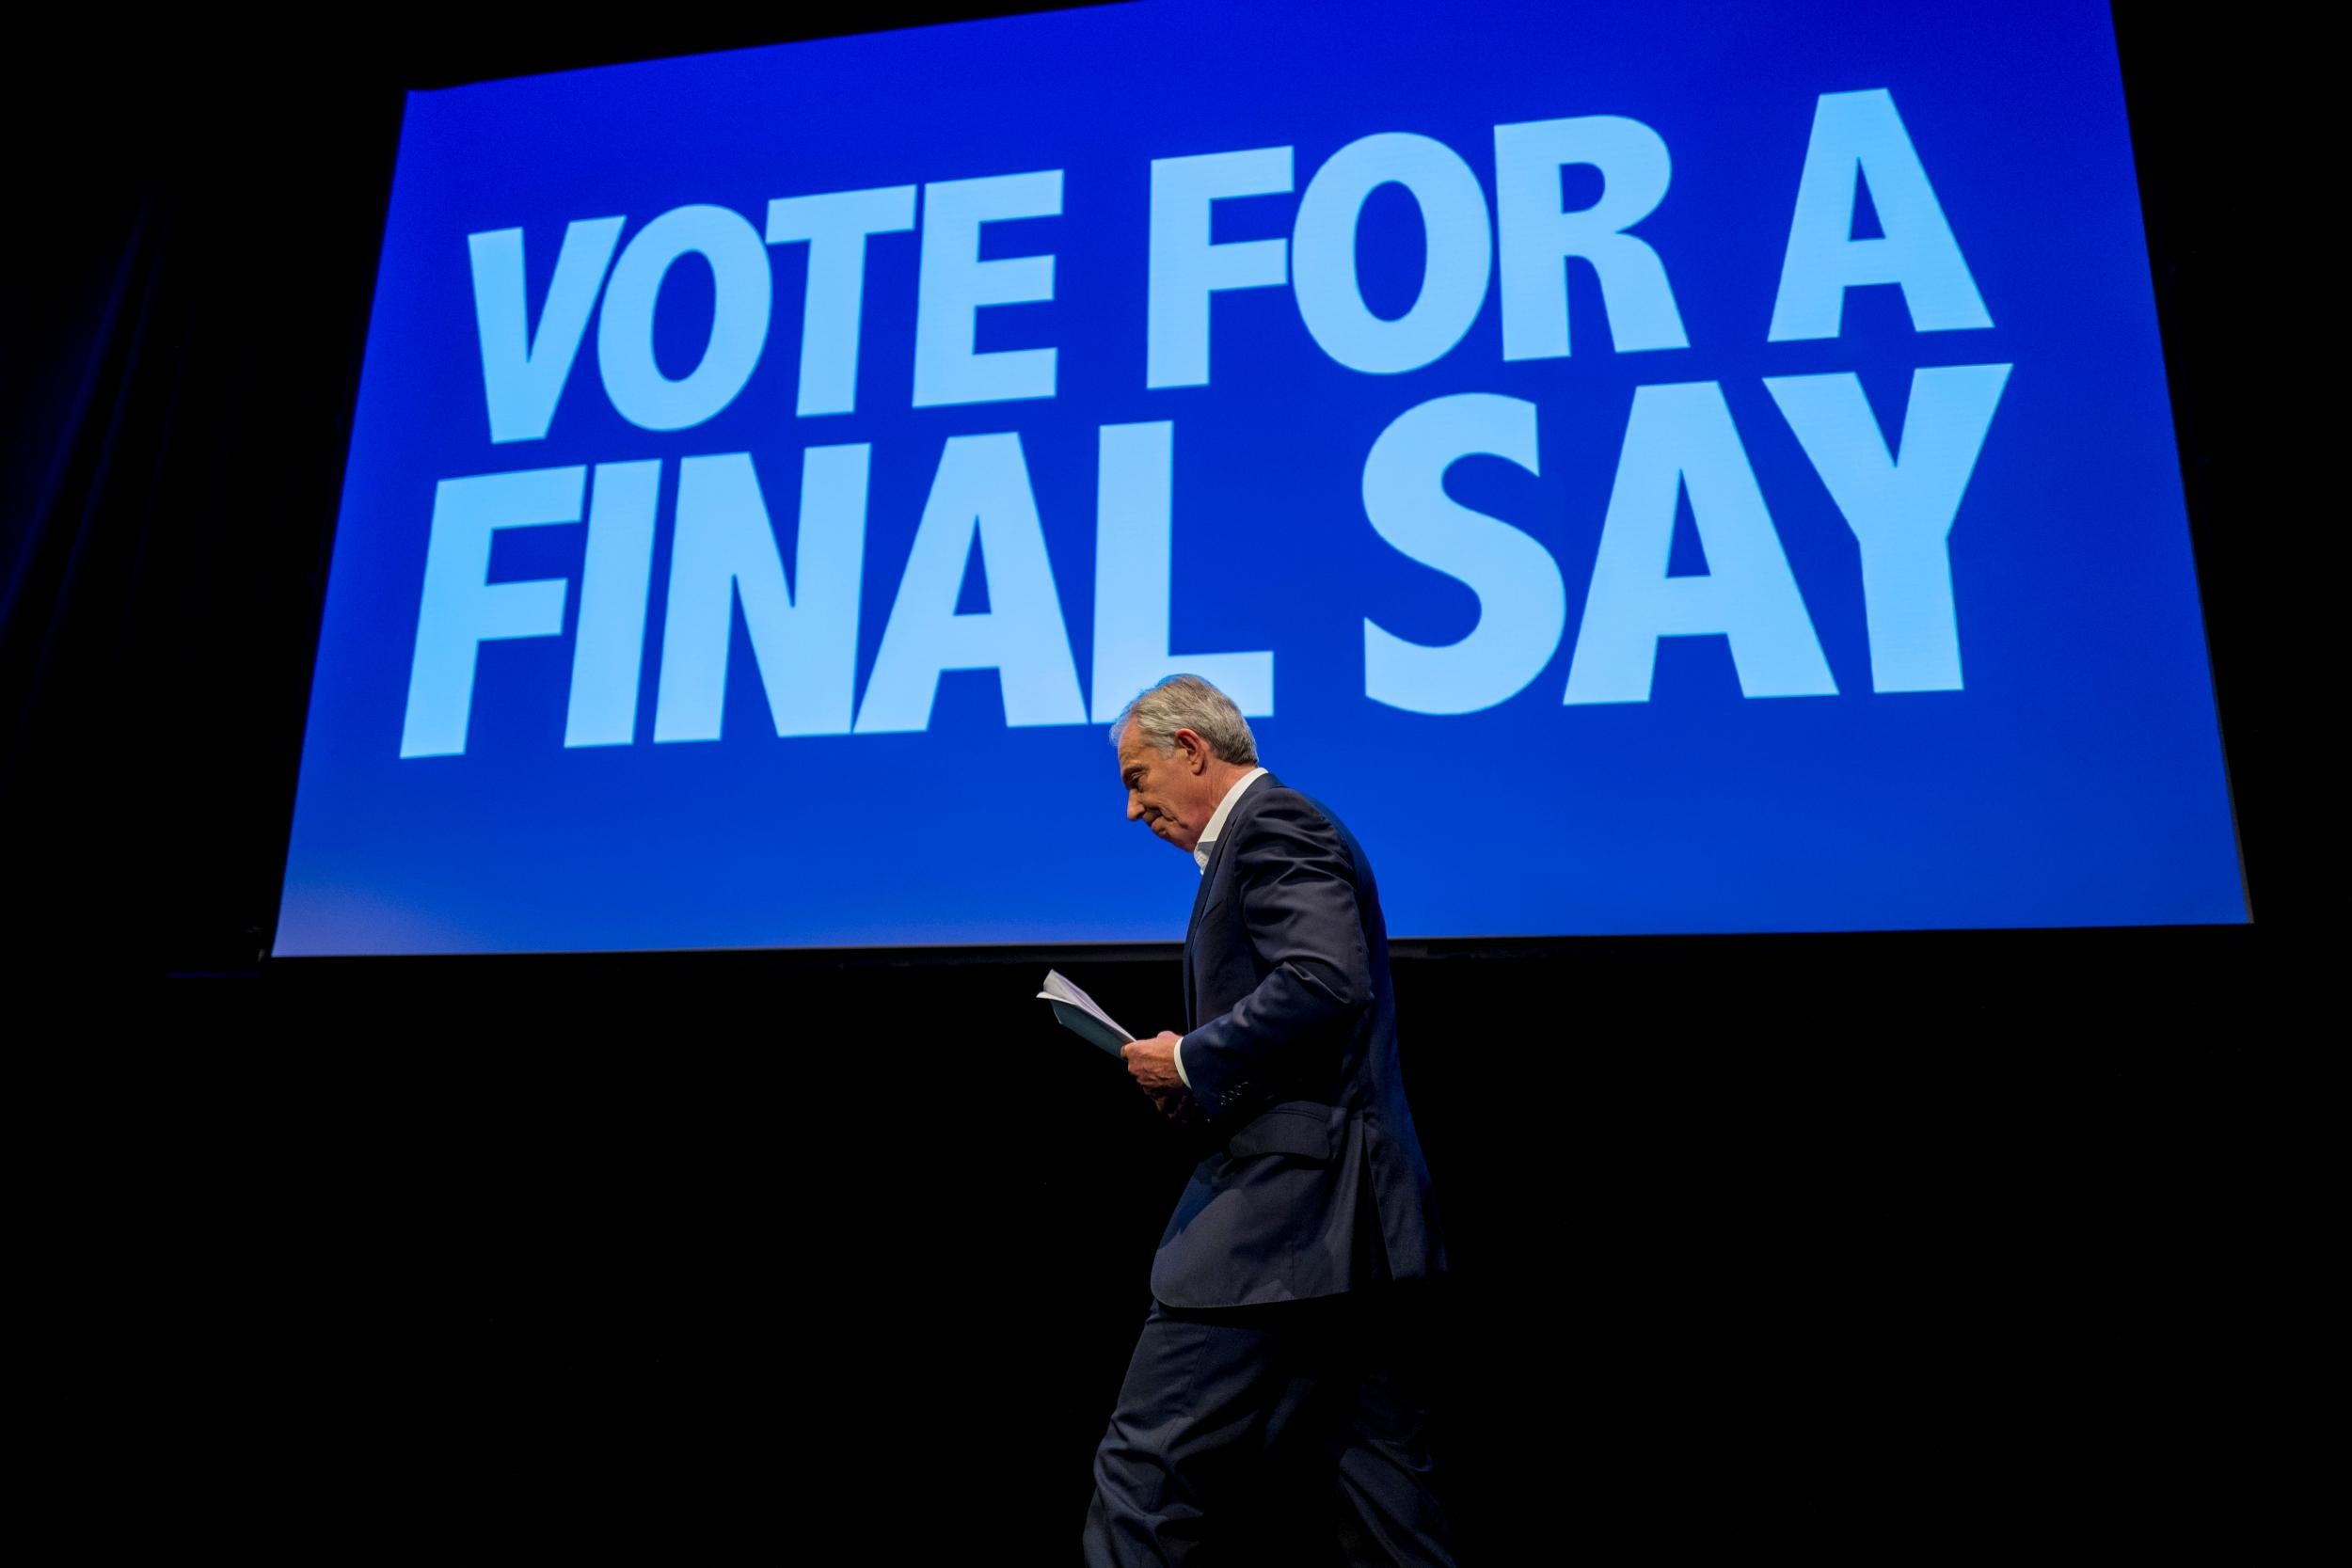 How Tony Blair's attempt to put the UK at the heart of Europe backfired